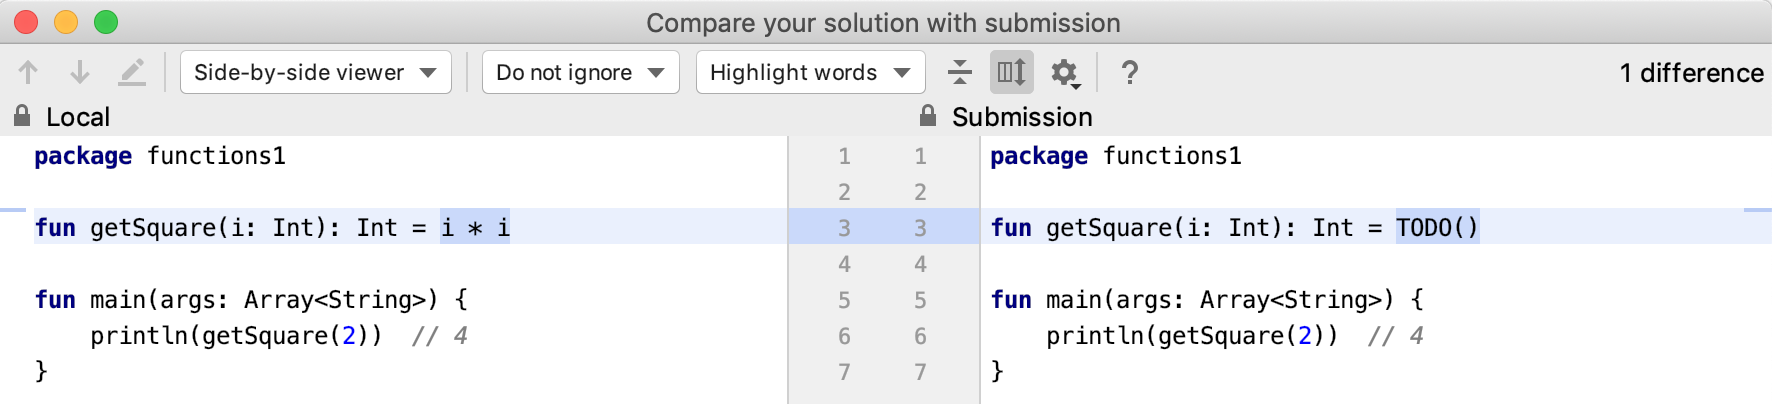 edu submissions diff atomic kotlin